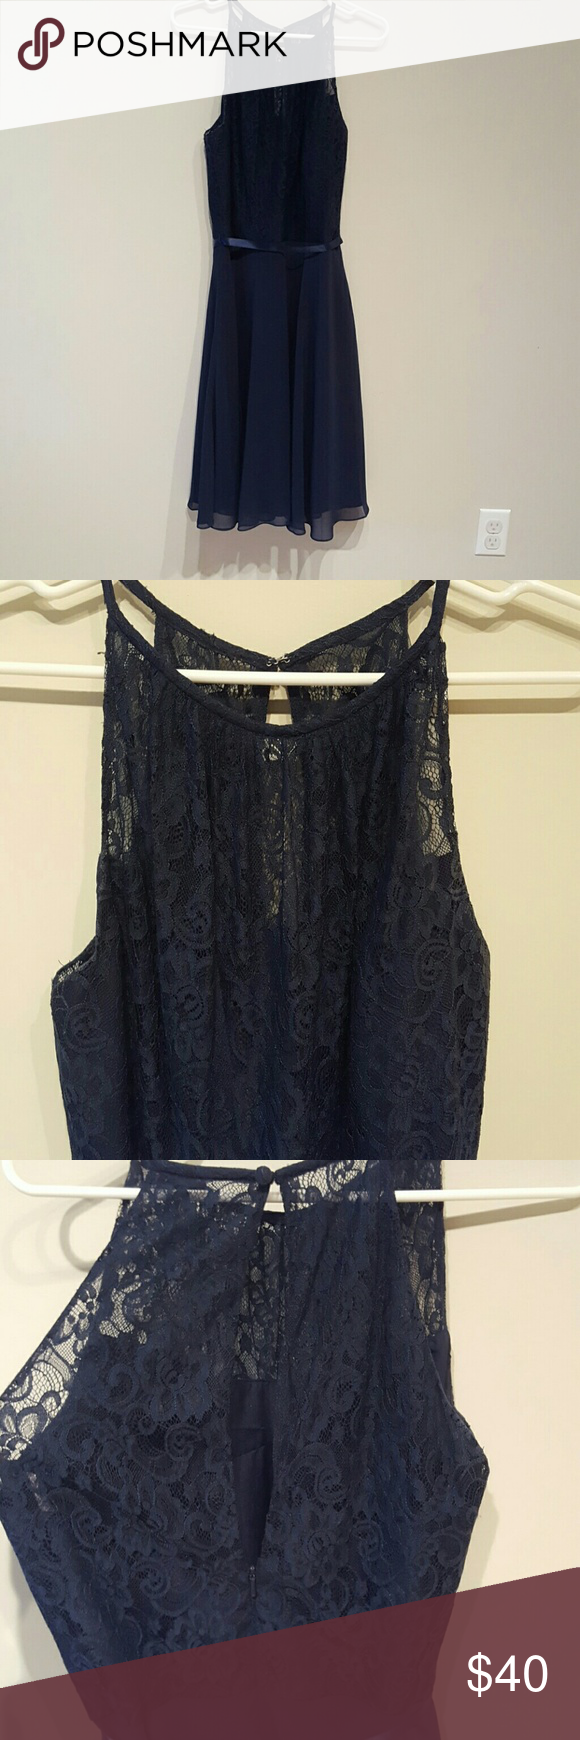 Navy Blue Dress Bridesmaids Dress Lace top, silky blue bottom. Navy blue underlay. Ties at back and has keyhole back with button. B2Jasmine Dresses Midi